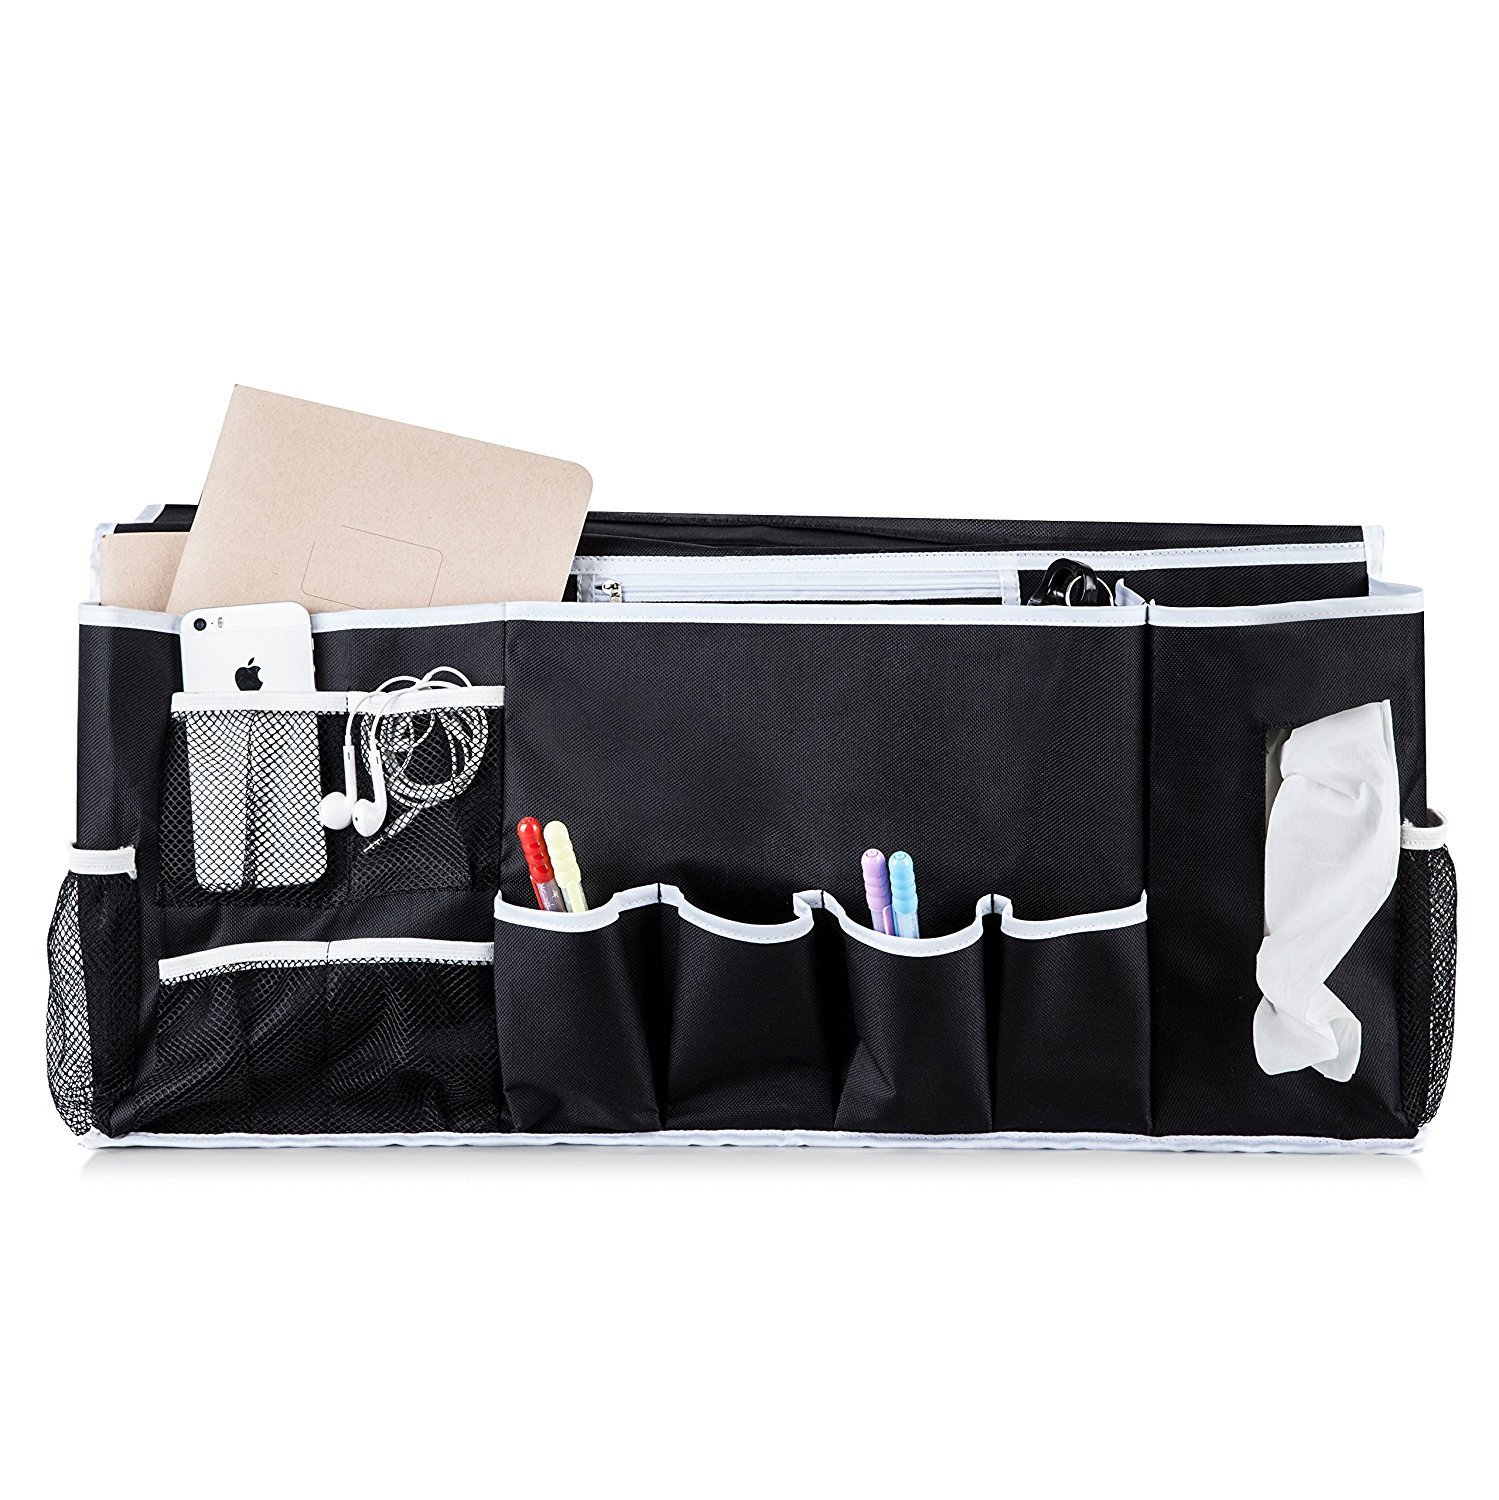 WeeDee Bedside Caddy Hanging Storage Organizer - 12 Pockets Perfect for College Dorm Rooms and Bunk Beds, Large Size Holds Your Laptop, Books, Tablet, Phone, Water Bottle, and More by WeeDee